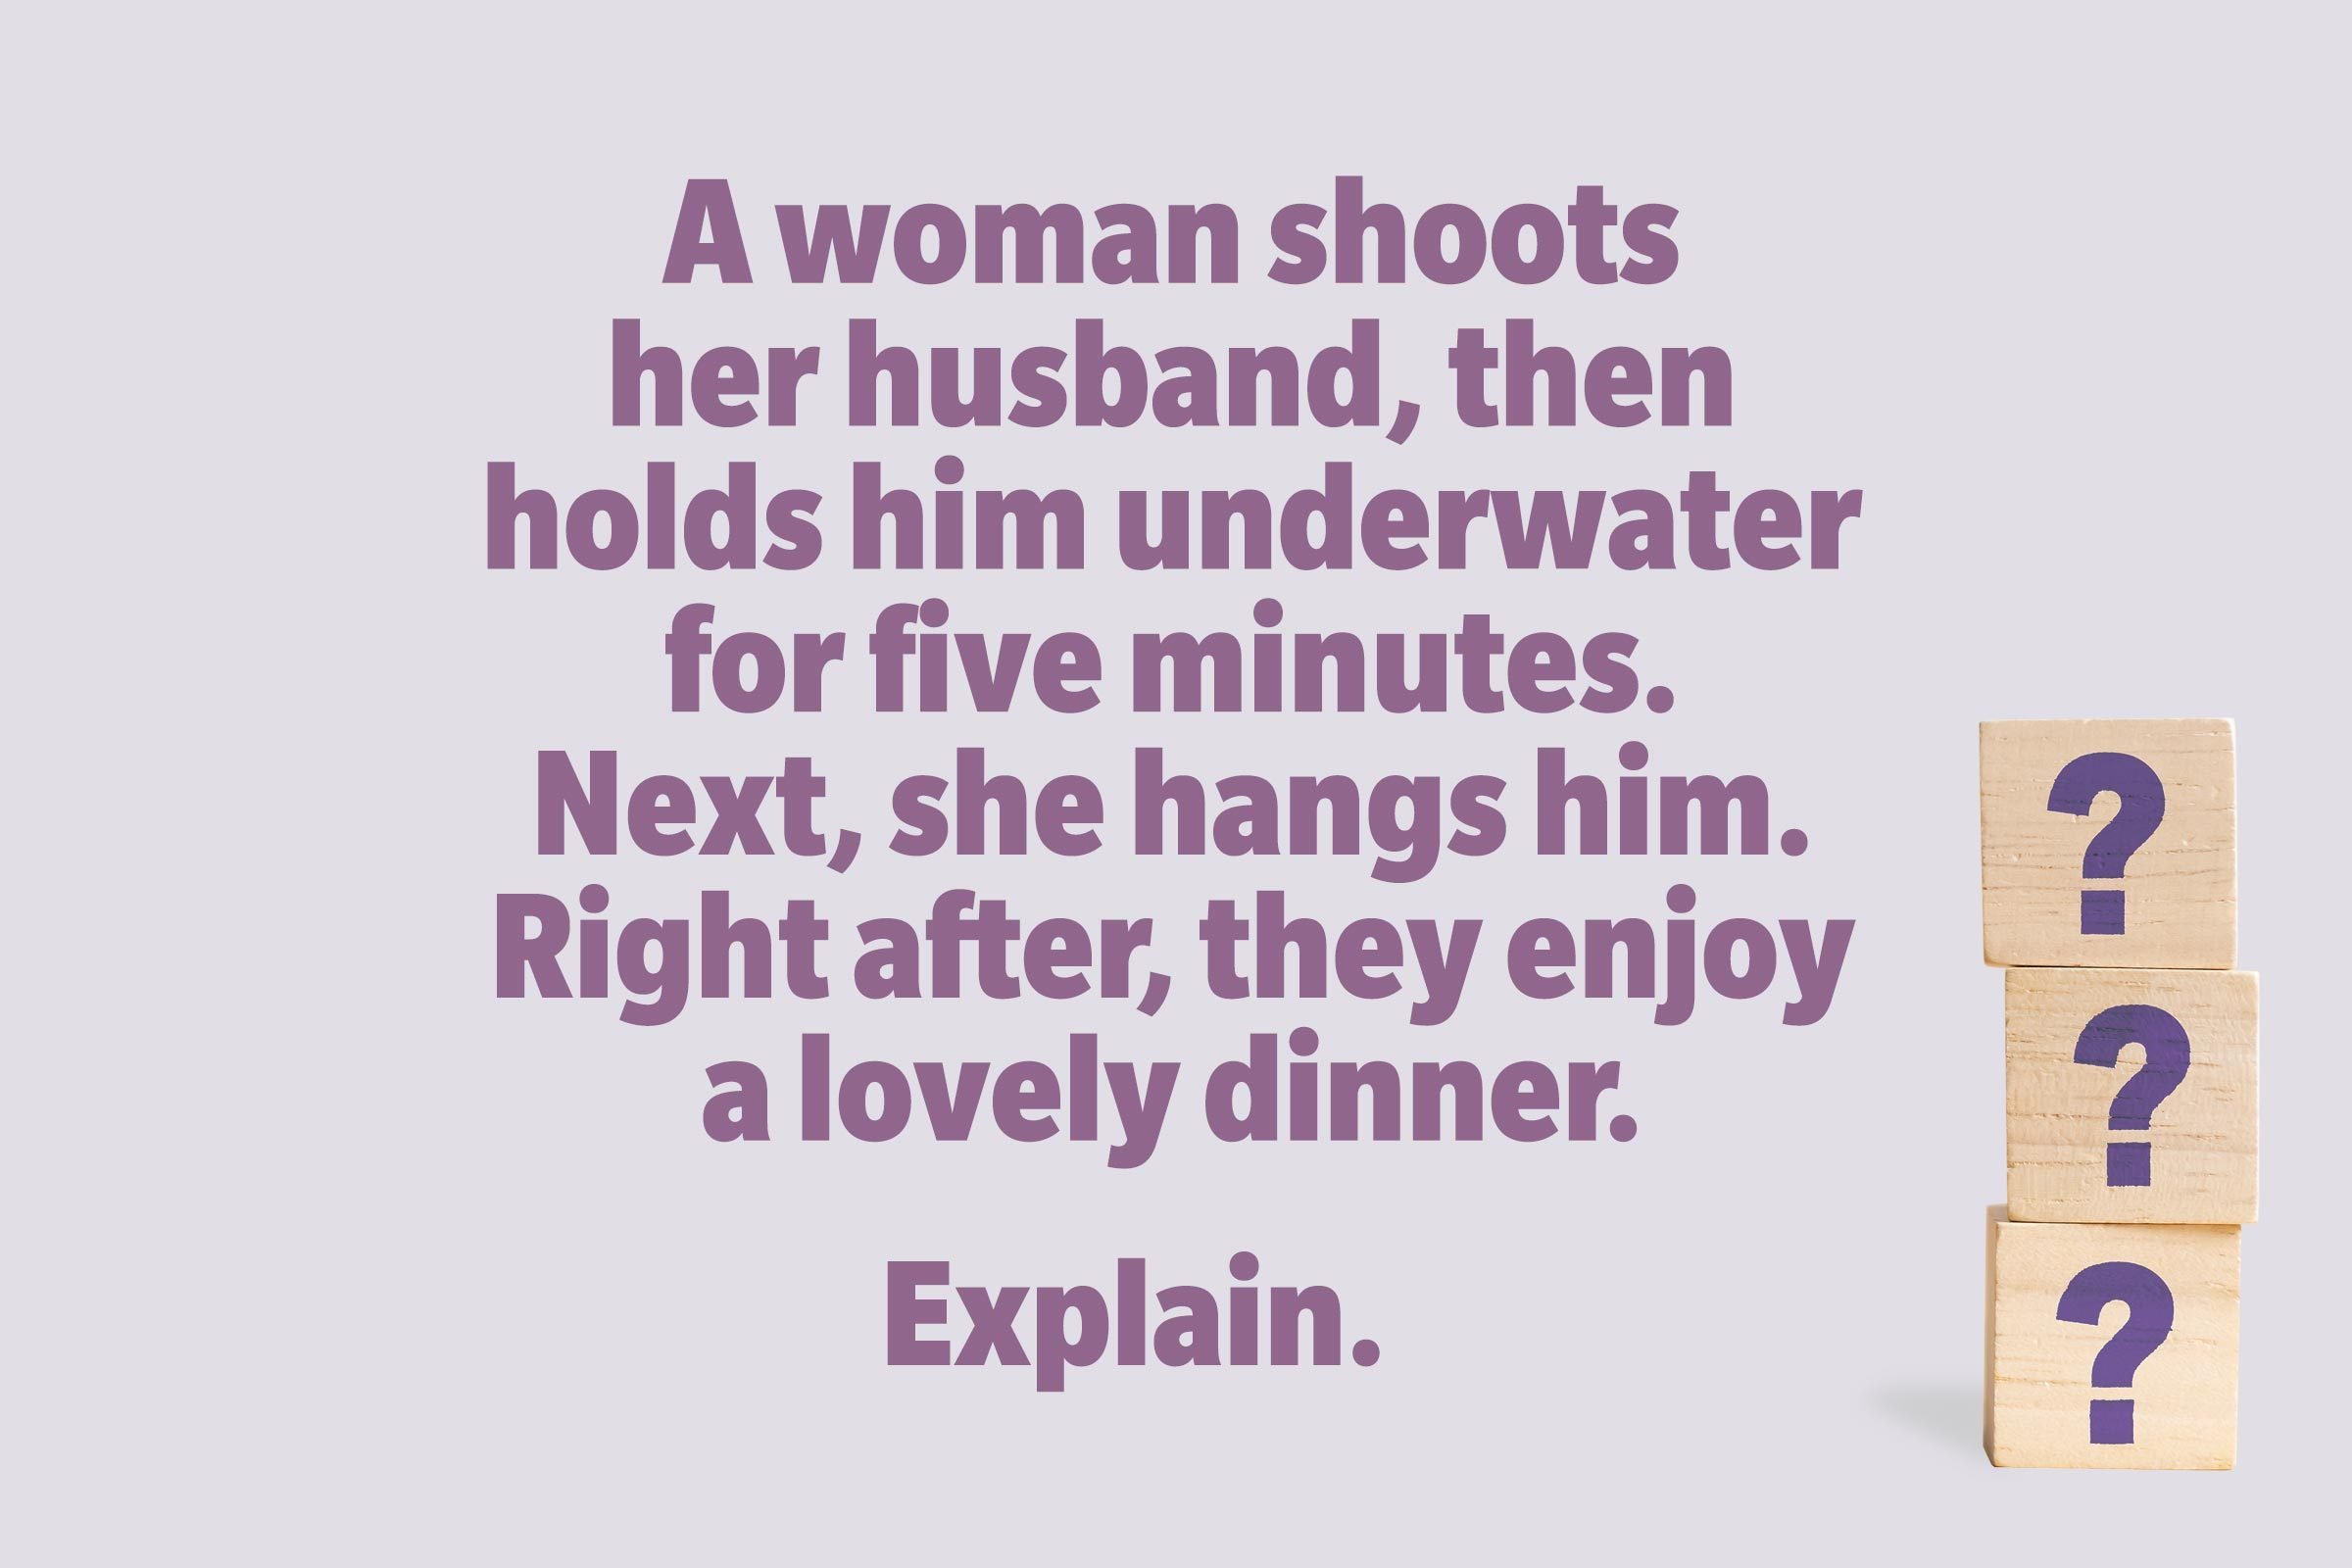 A woman shoots her husband, then holds him underwater for five minutes. Next, she hangs him. Right after, they enjoy a lovely dinner. Explain.